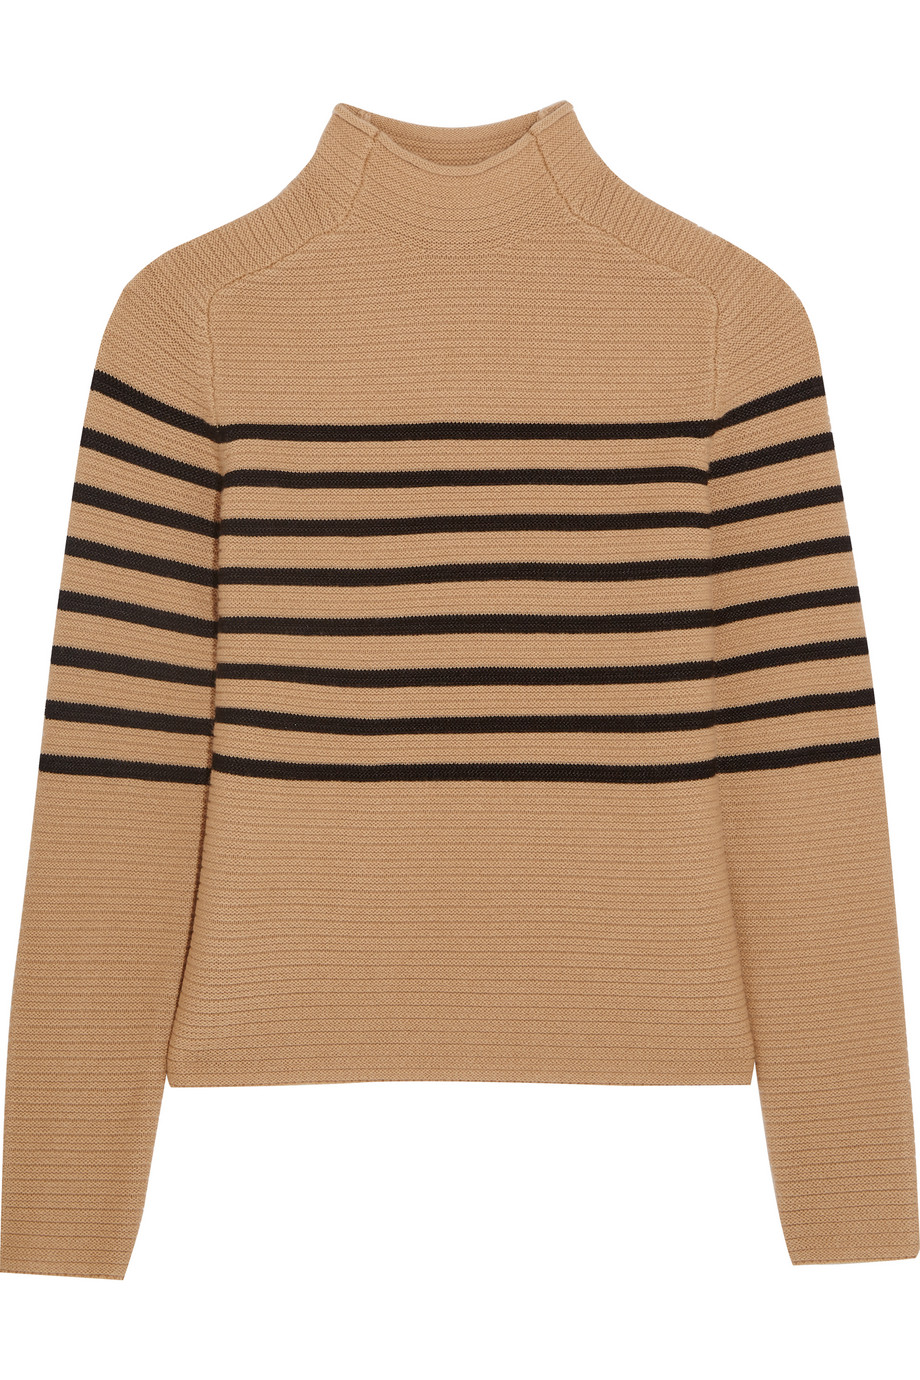 Topshop Unique Broadwick Striped Wool and Cashmere-Blend Sweater, Camel, Women's, Size: XS